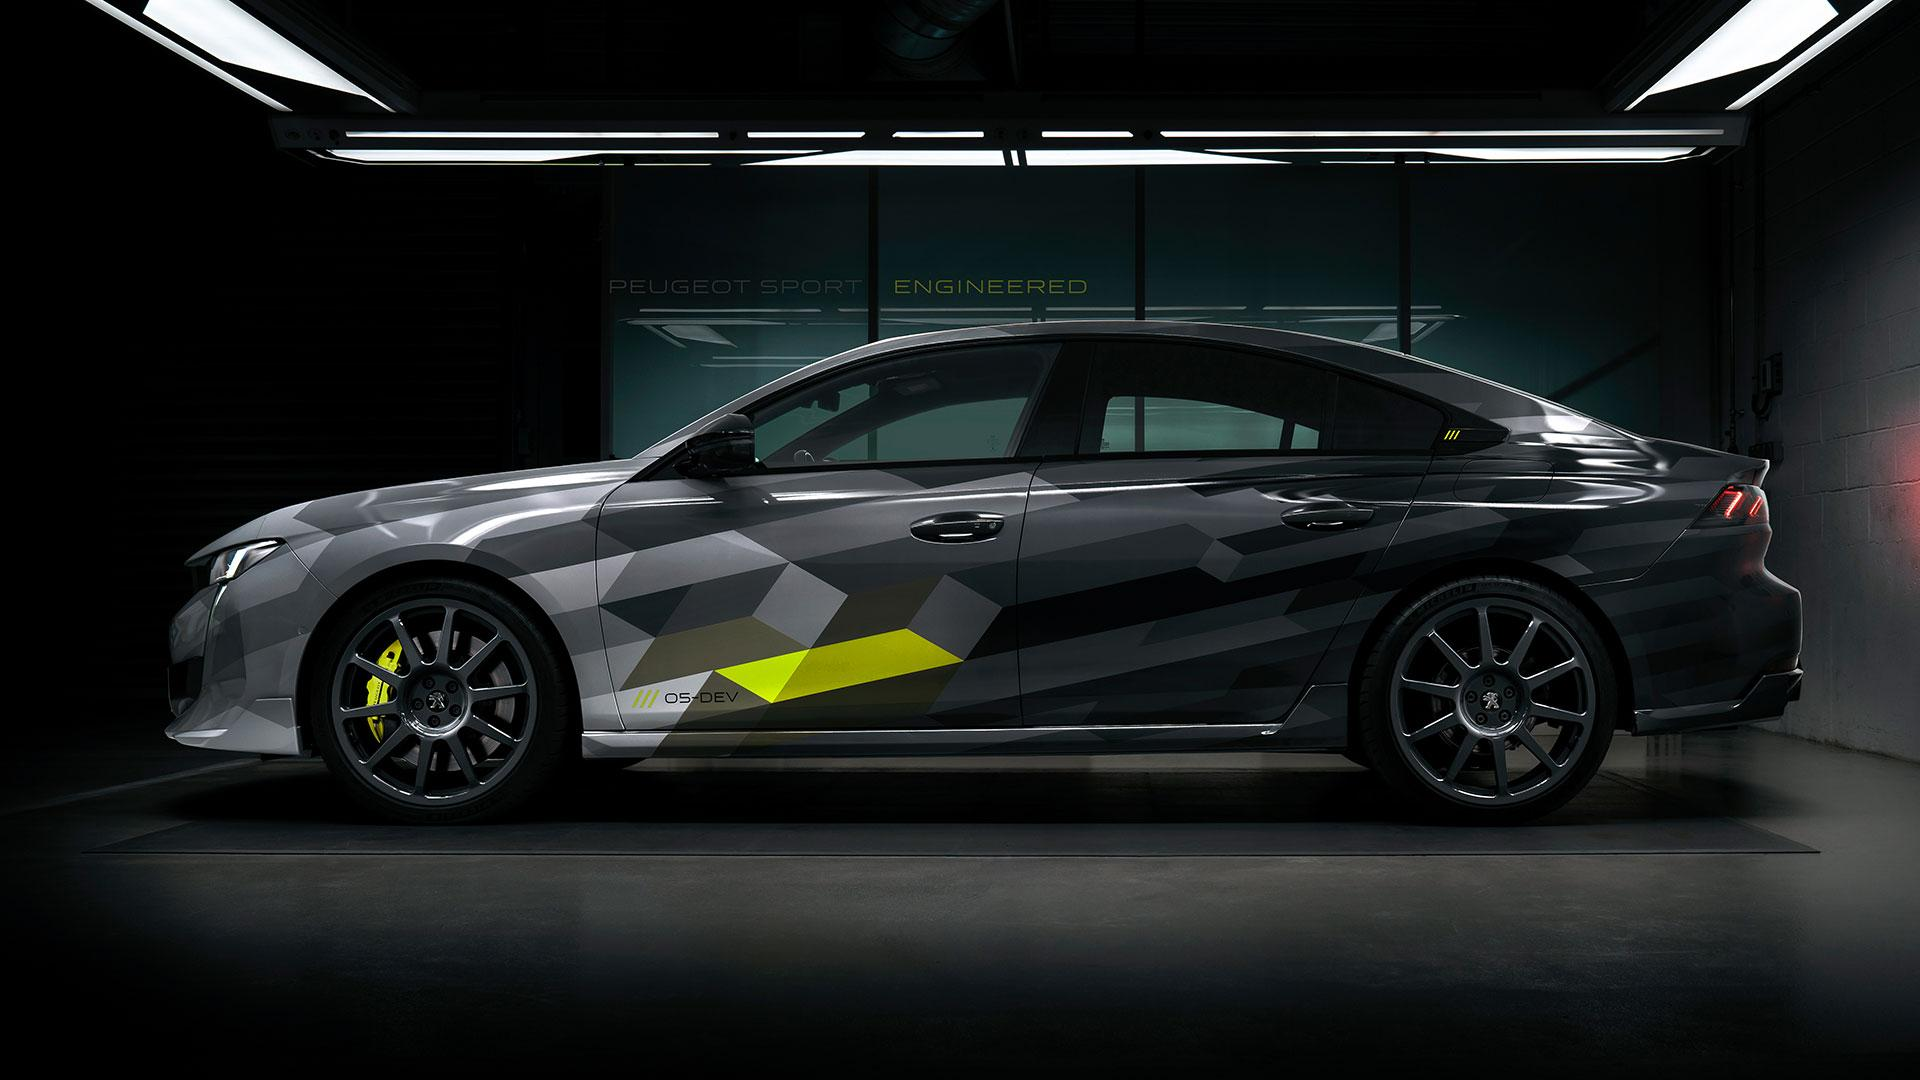 Peugeot 508 Sport Engineered in pitbox